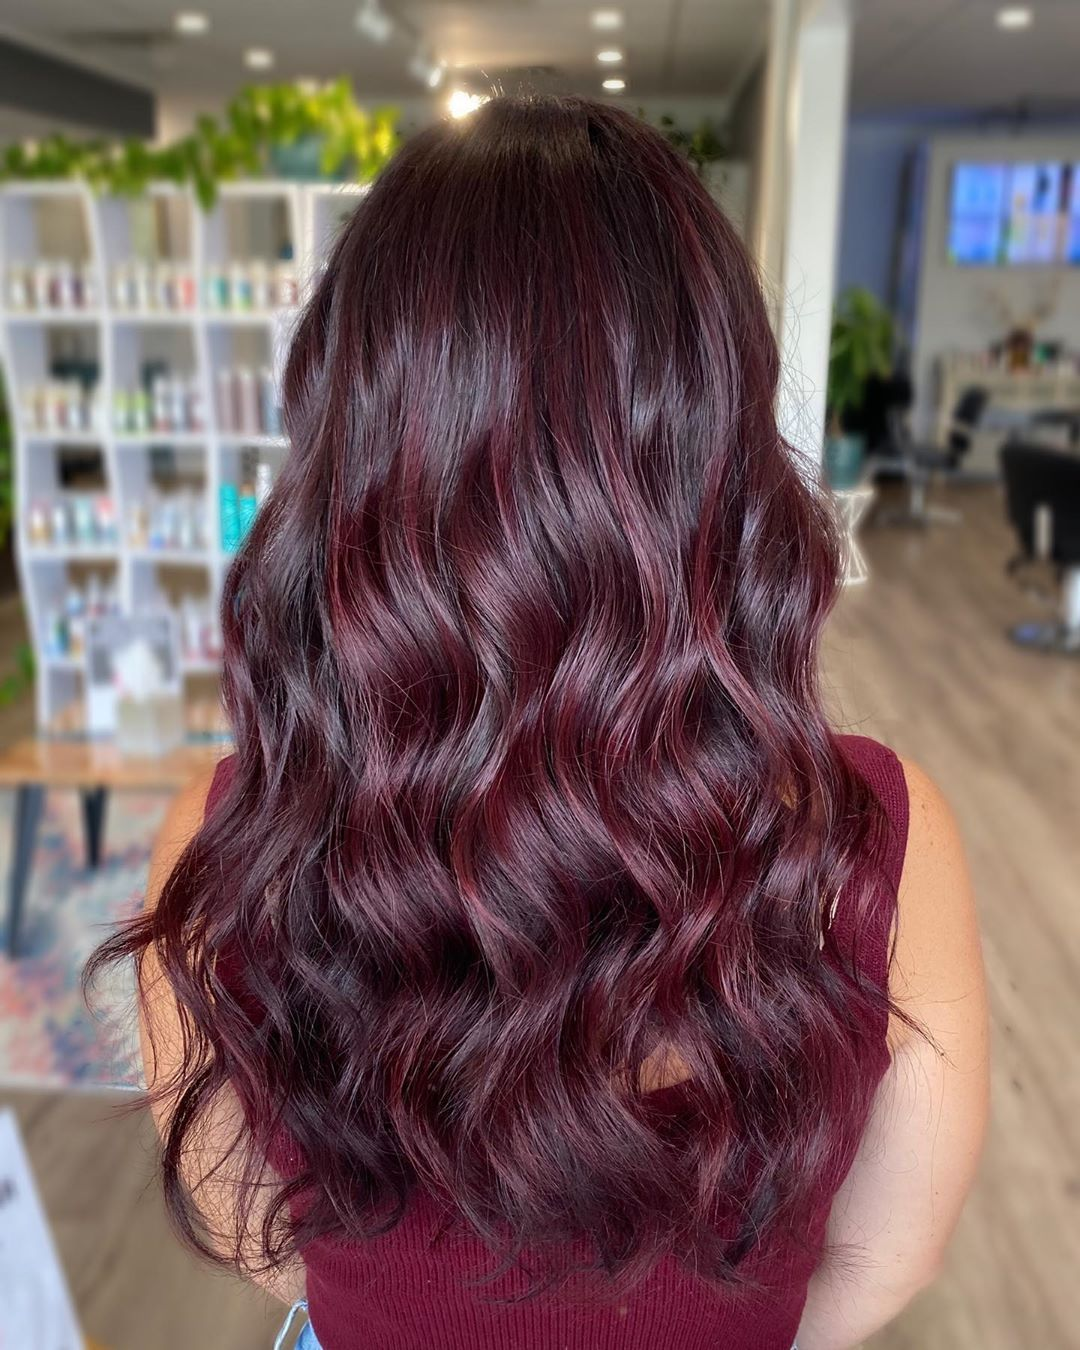 Long Red Wine Hair for Fall